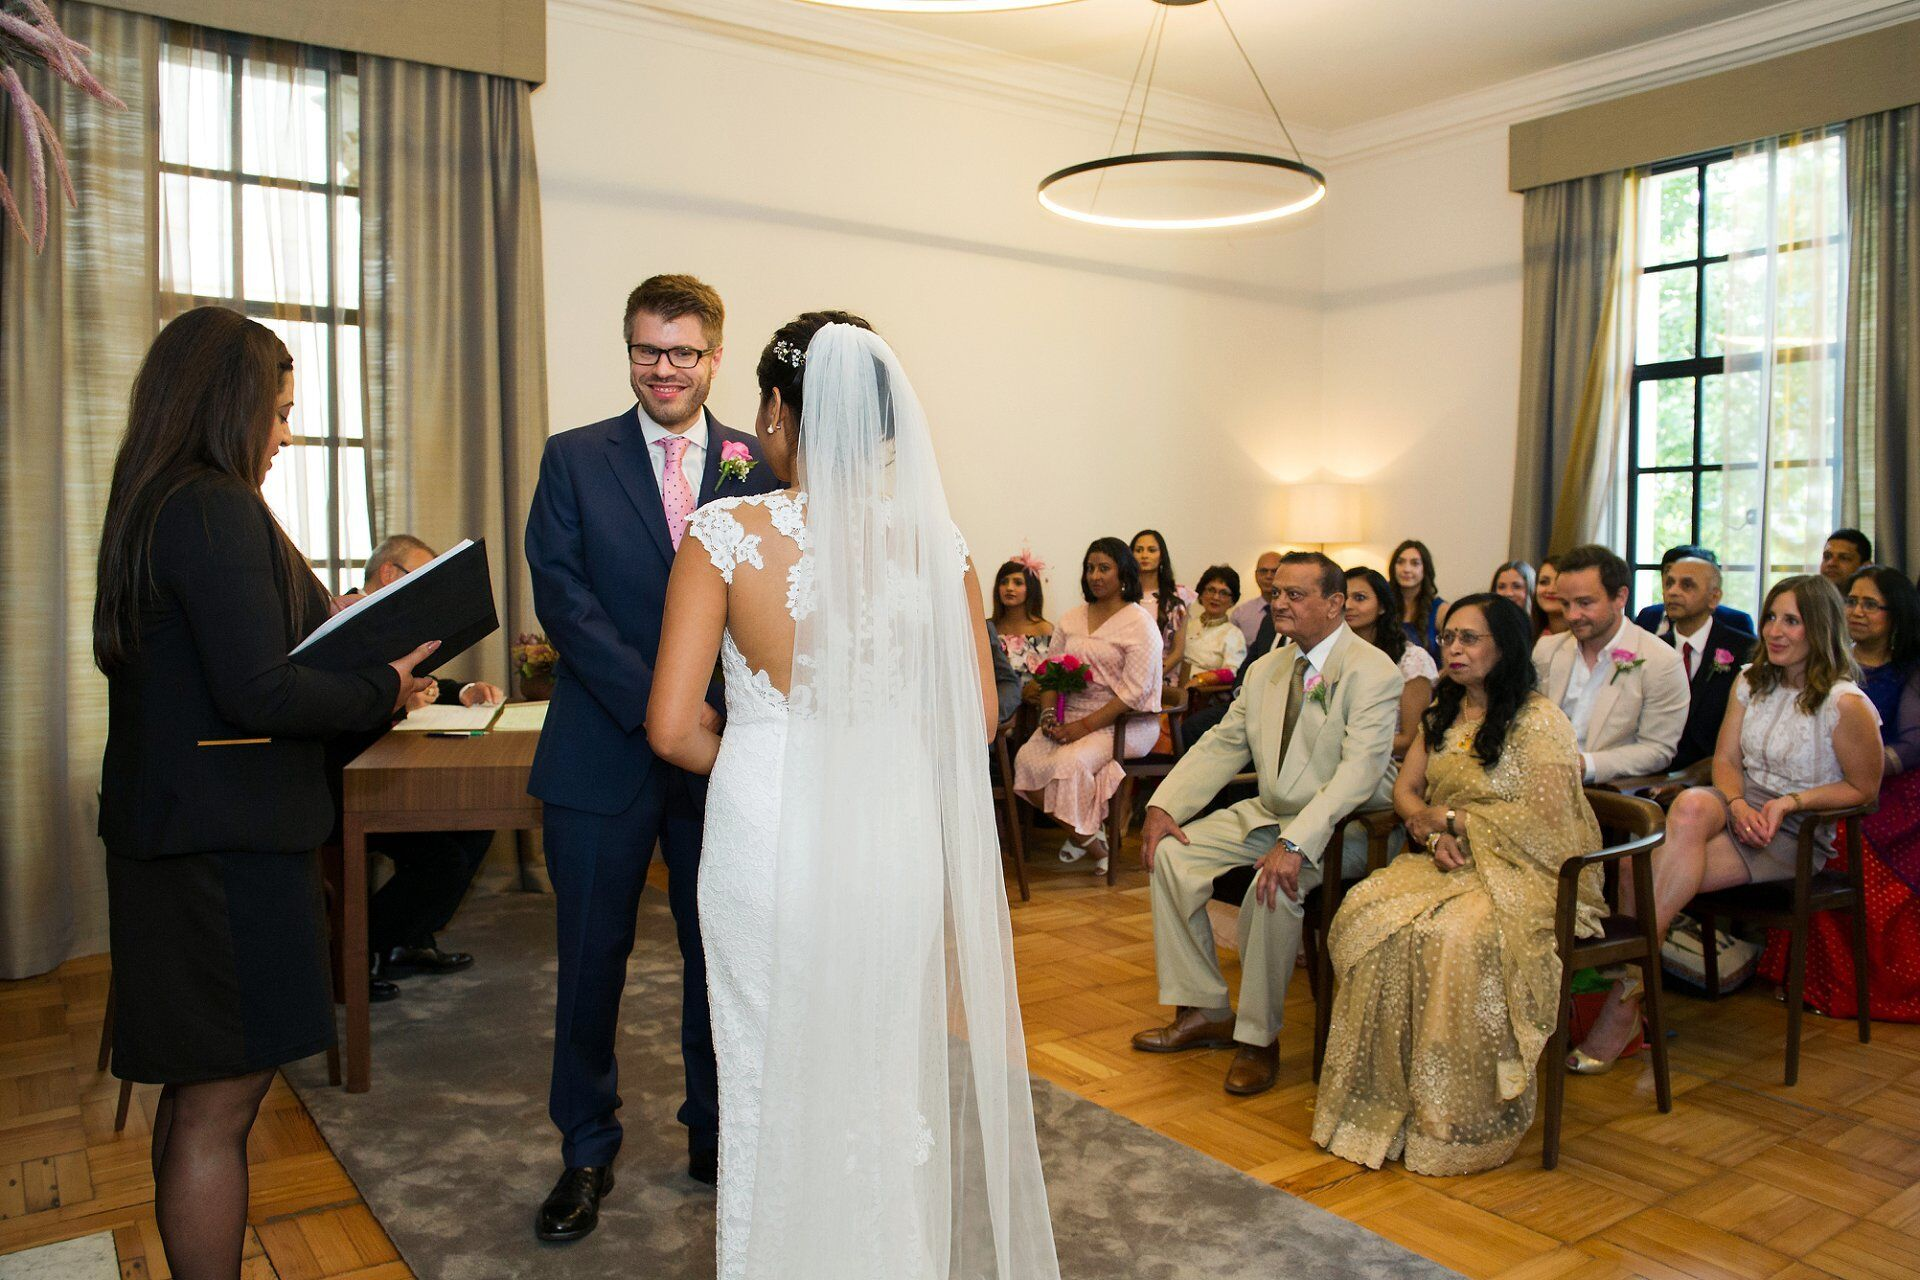 mayfair room wedding photography with capacity 30 guests ideal for smaller weddings